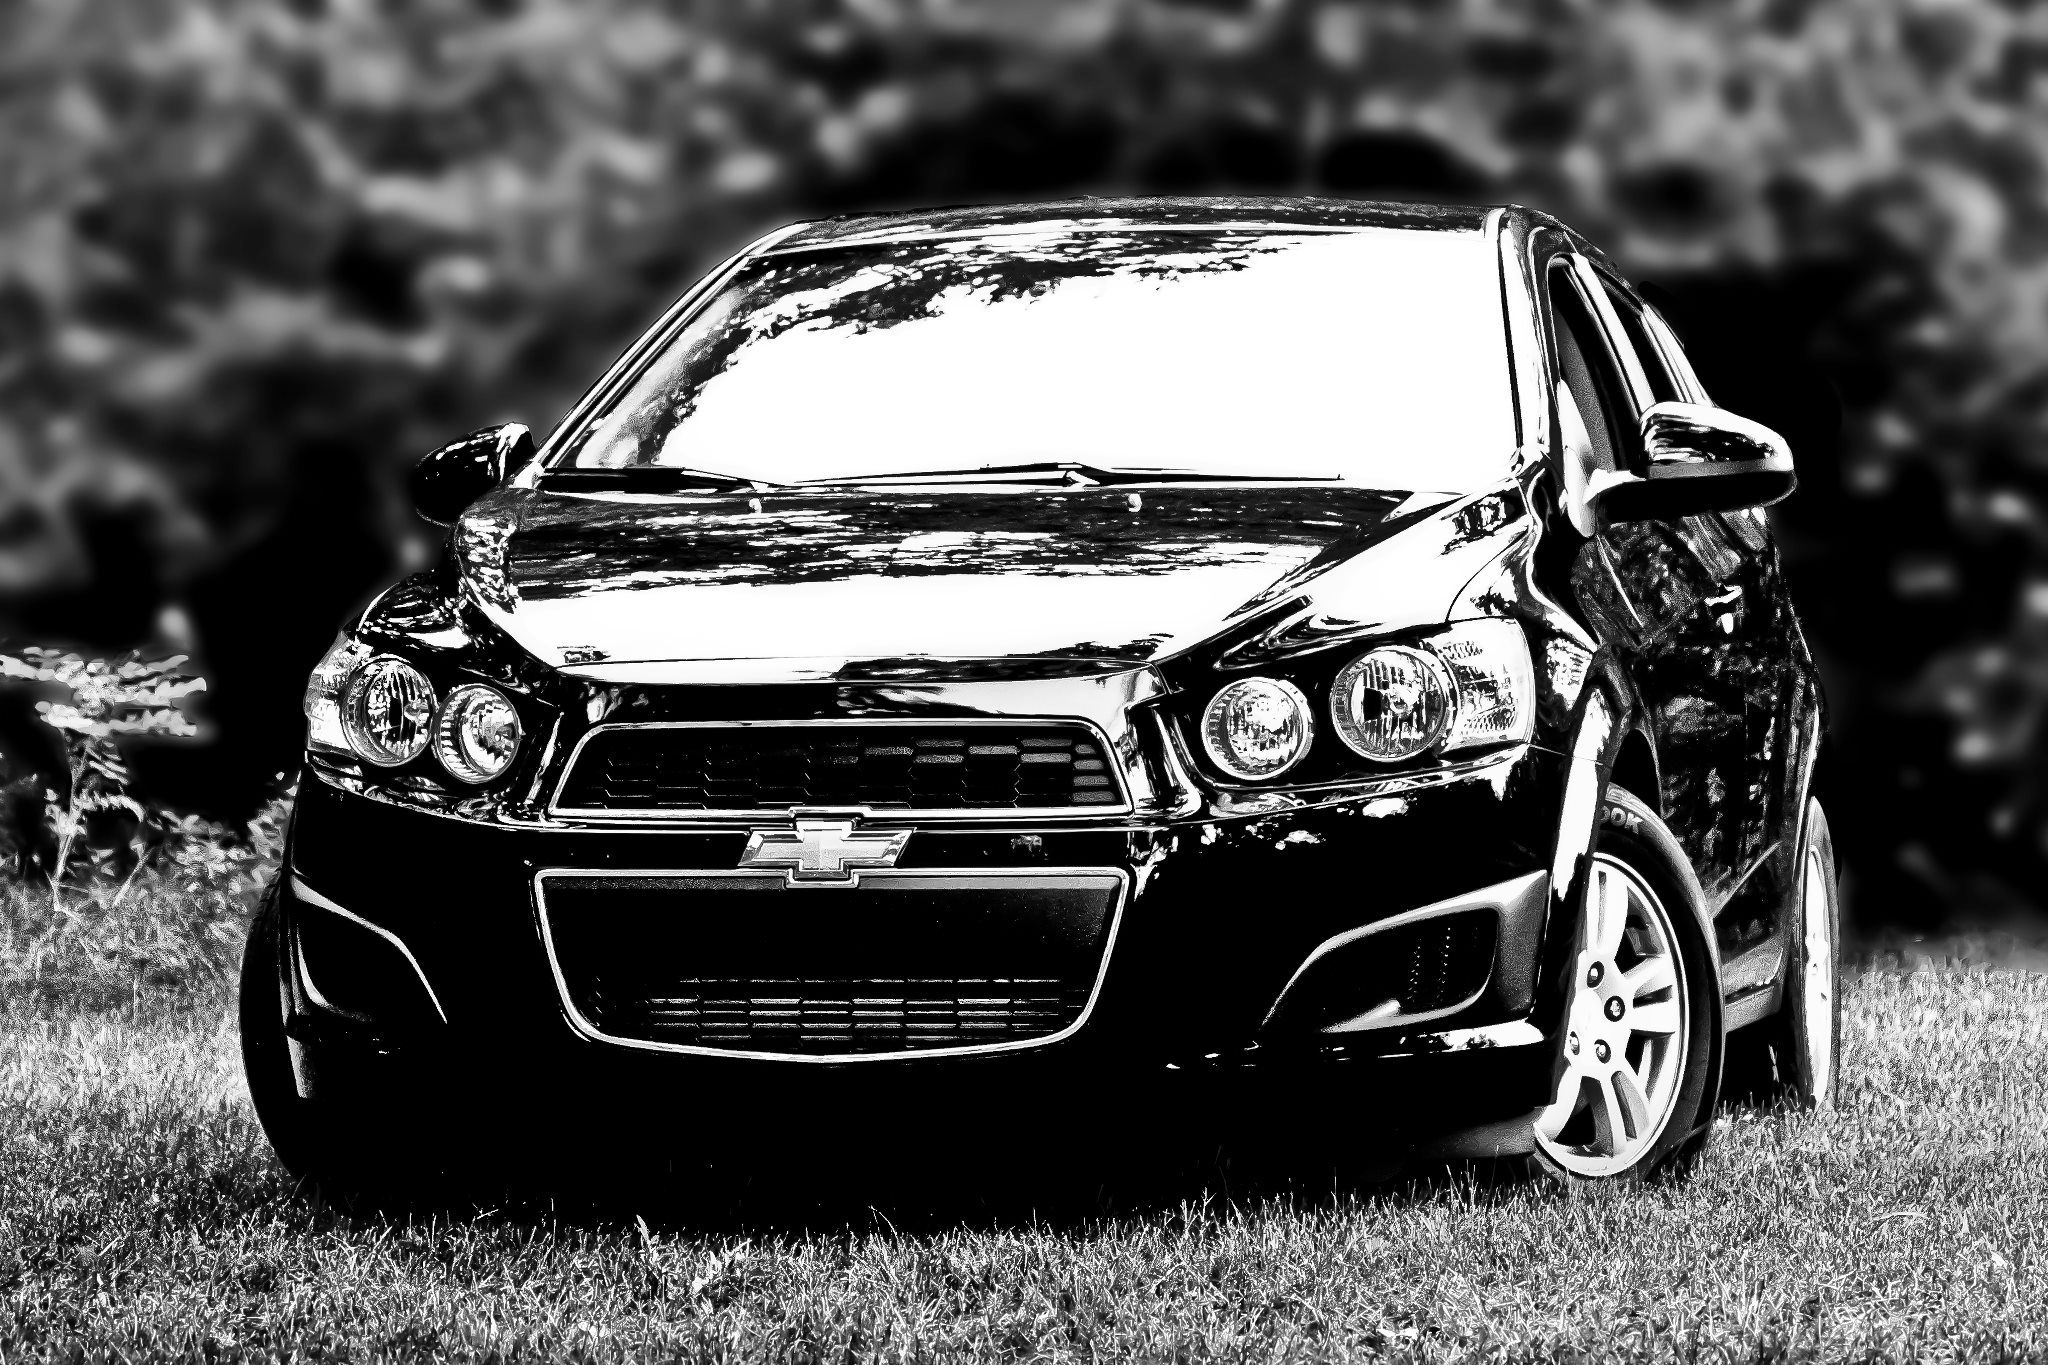 Robert S Showed Us That Even In Black And White The Chevy